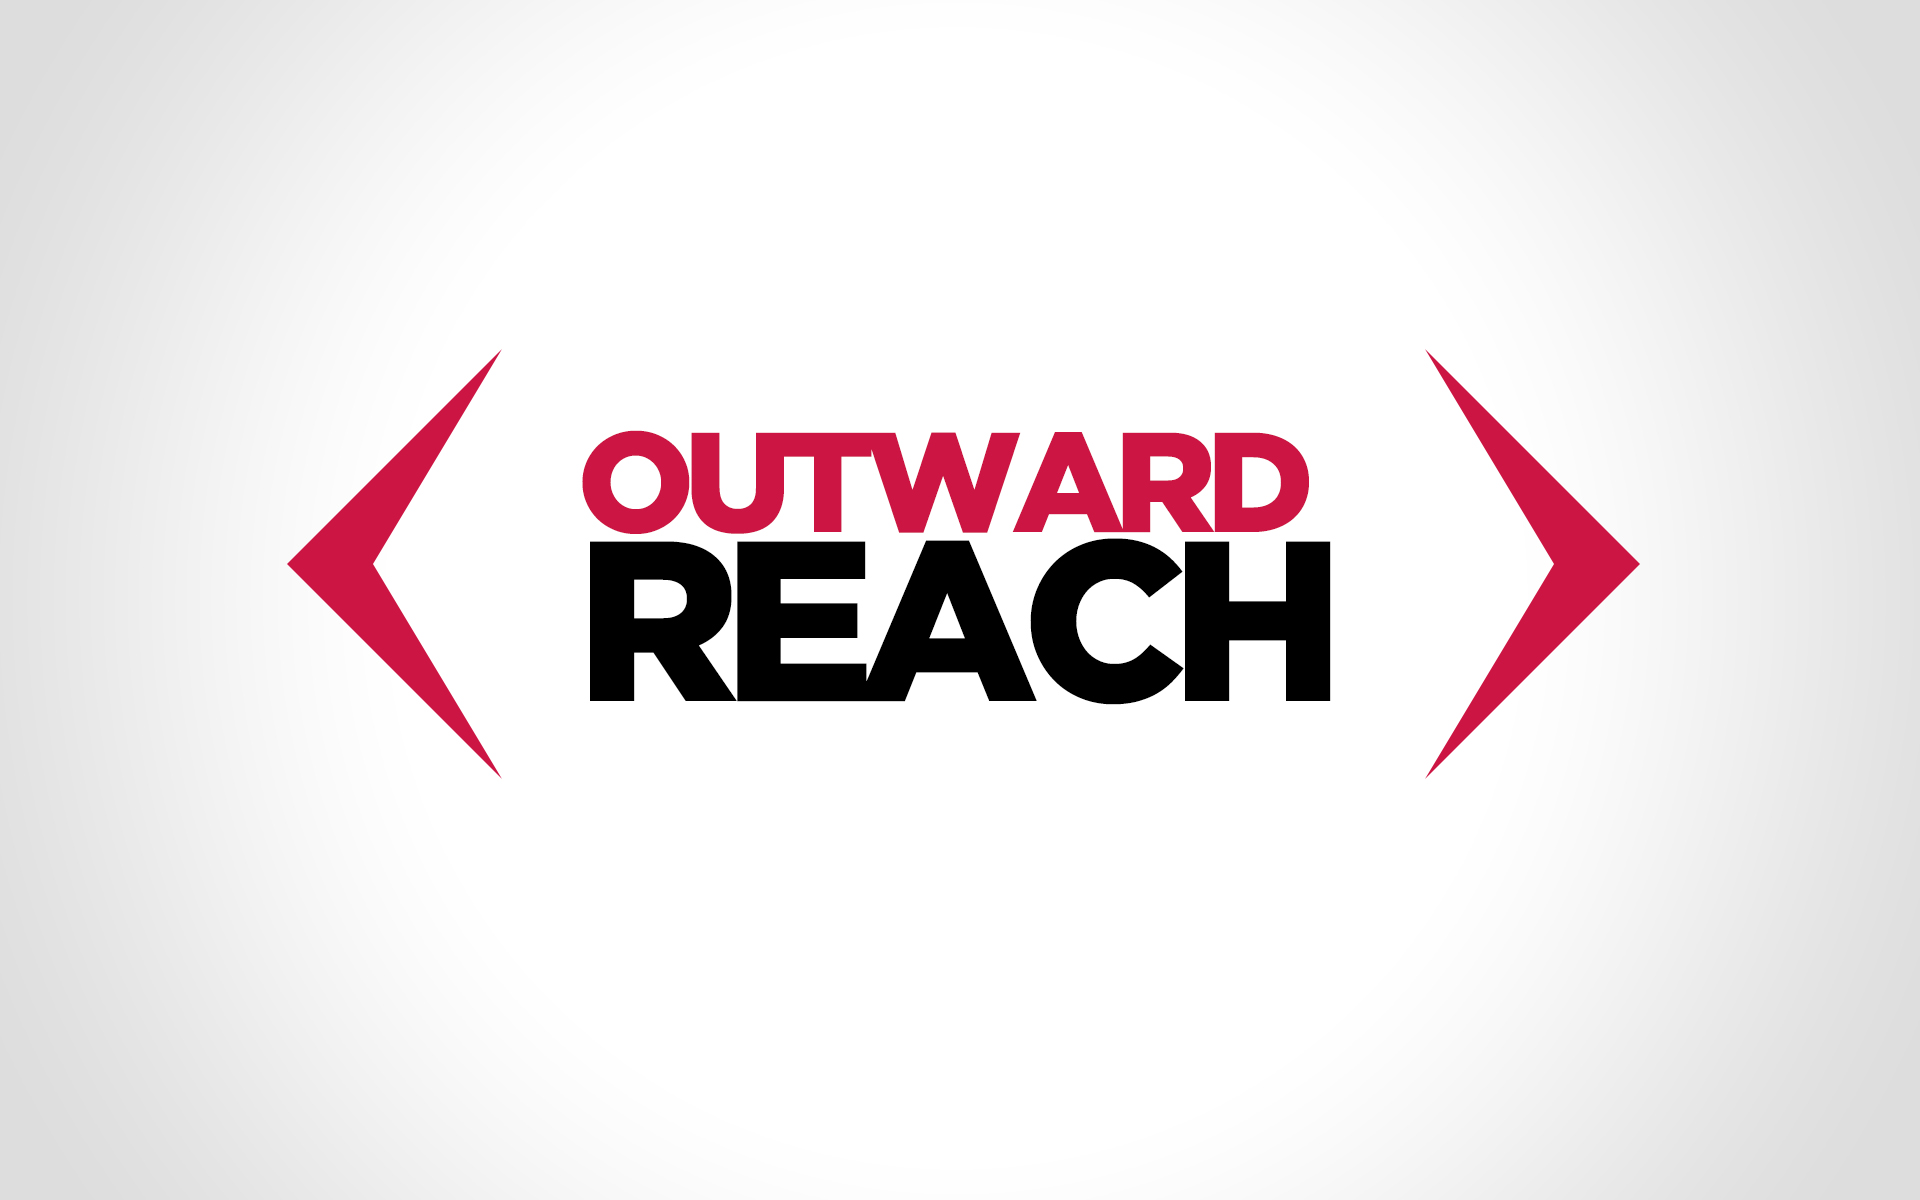 Outward Reach